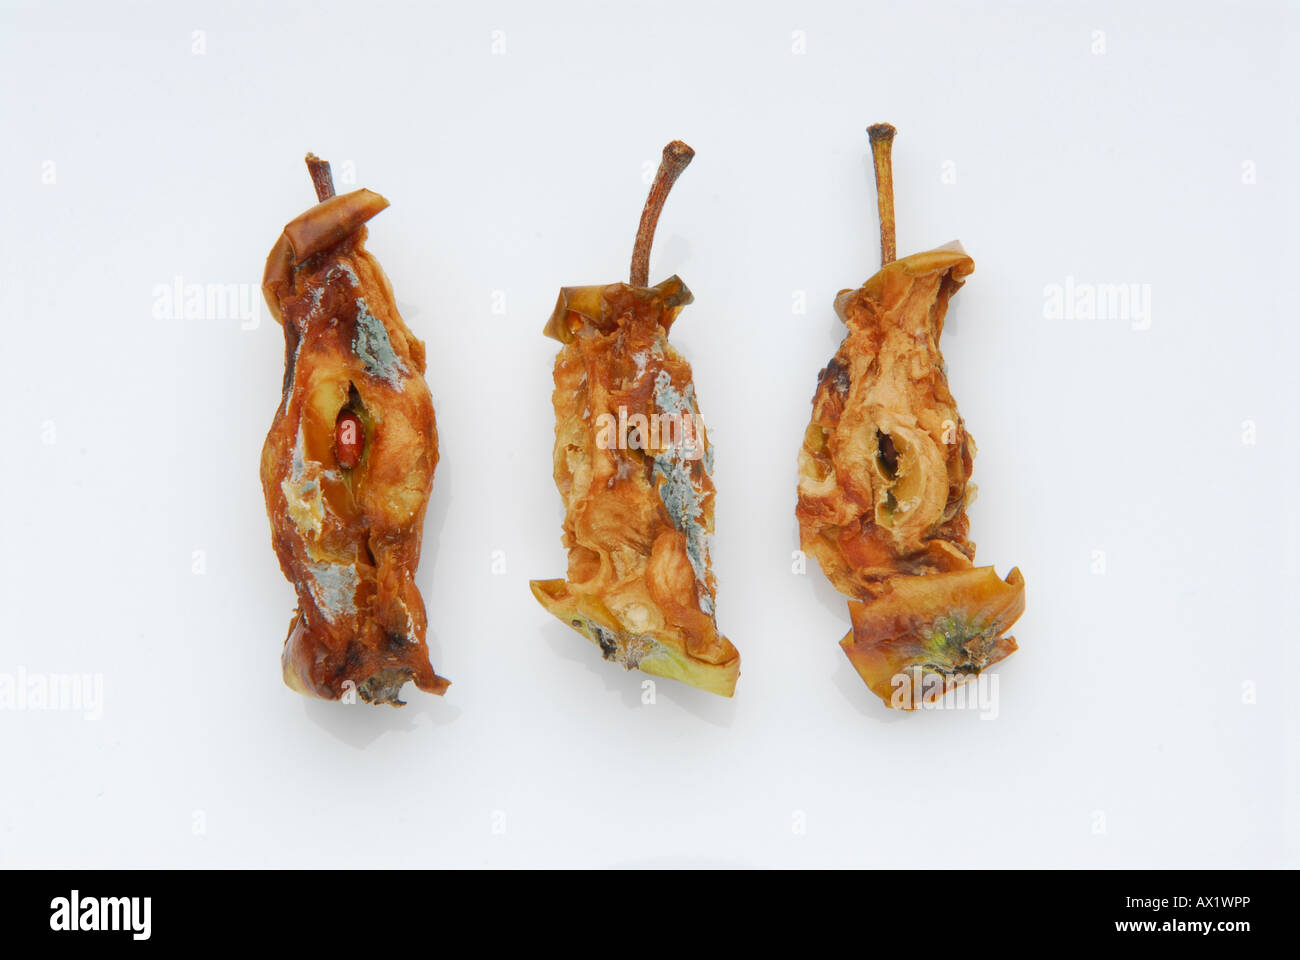 Rotting apple cores - Stock Image